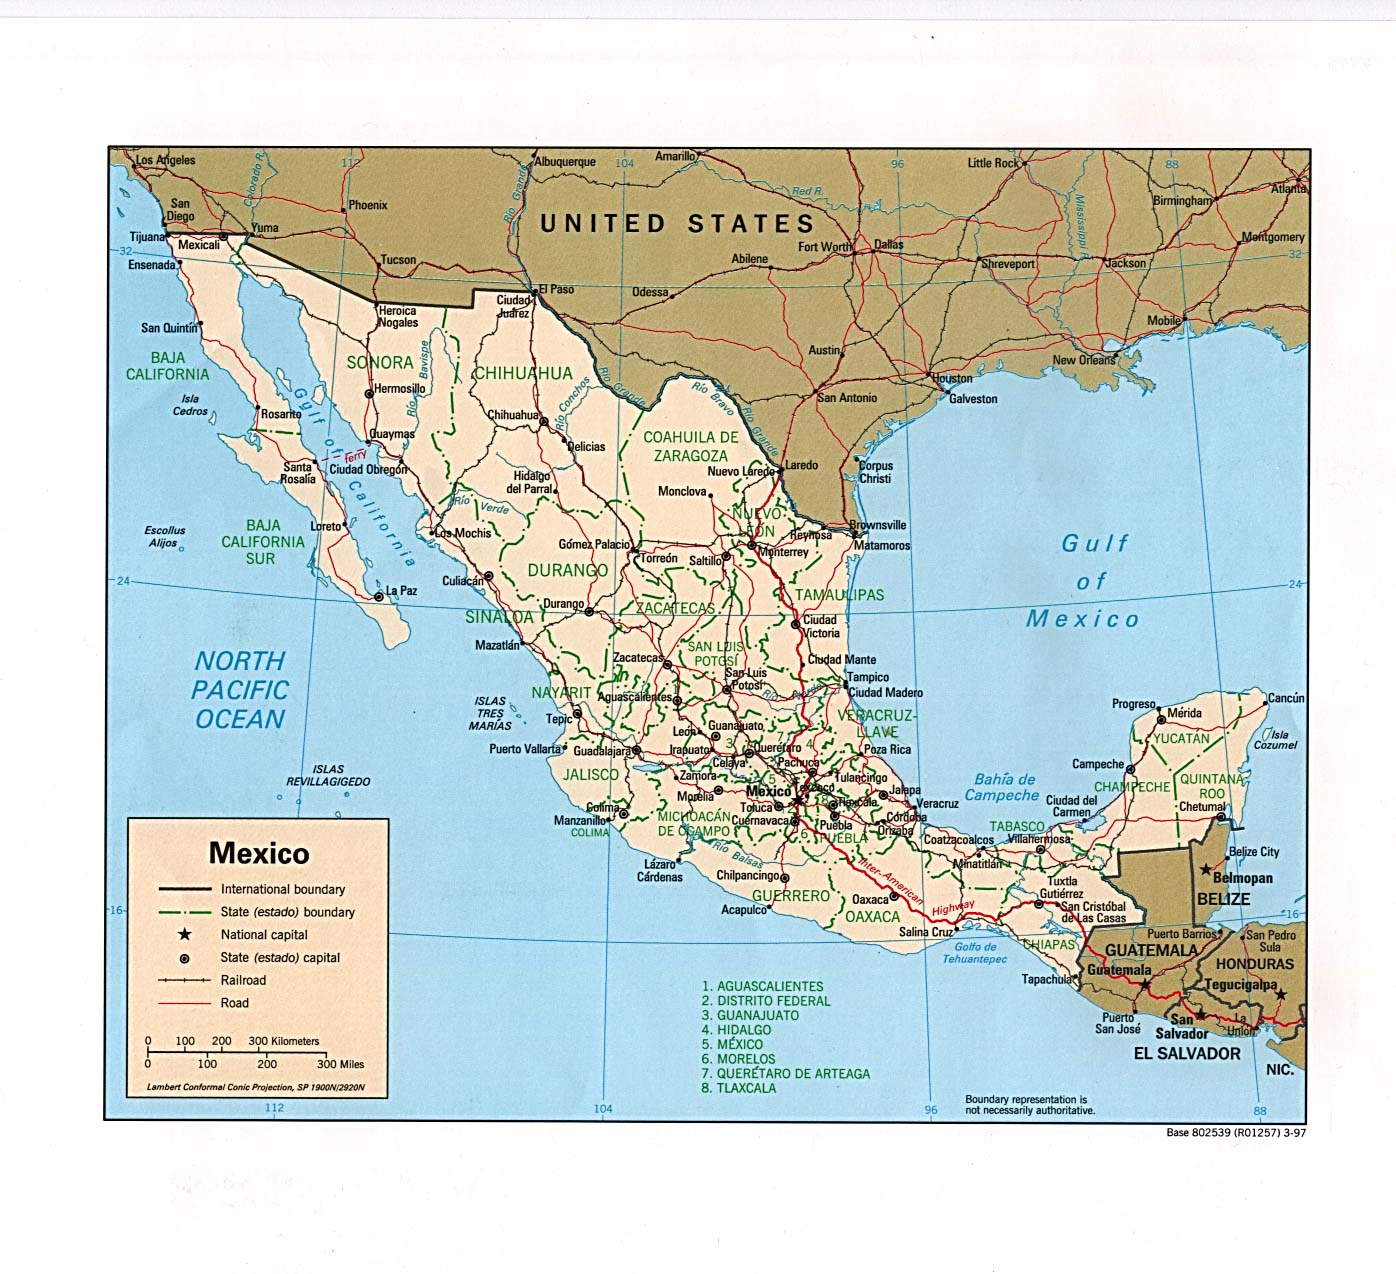 mexico political 1997 315k and pdf format 356k